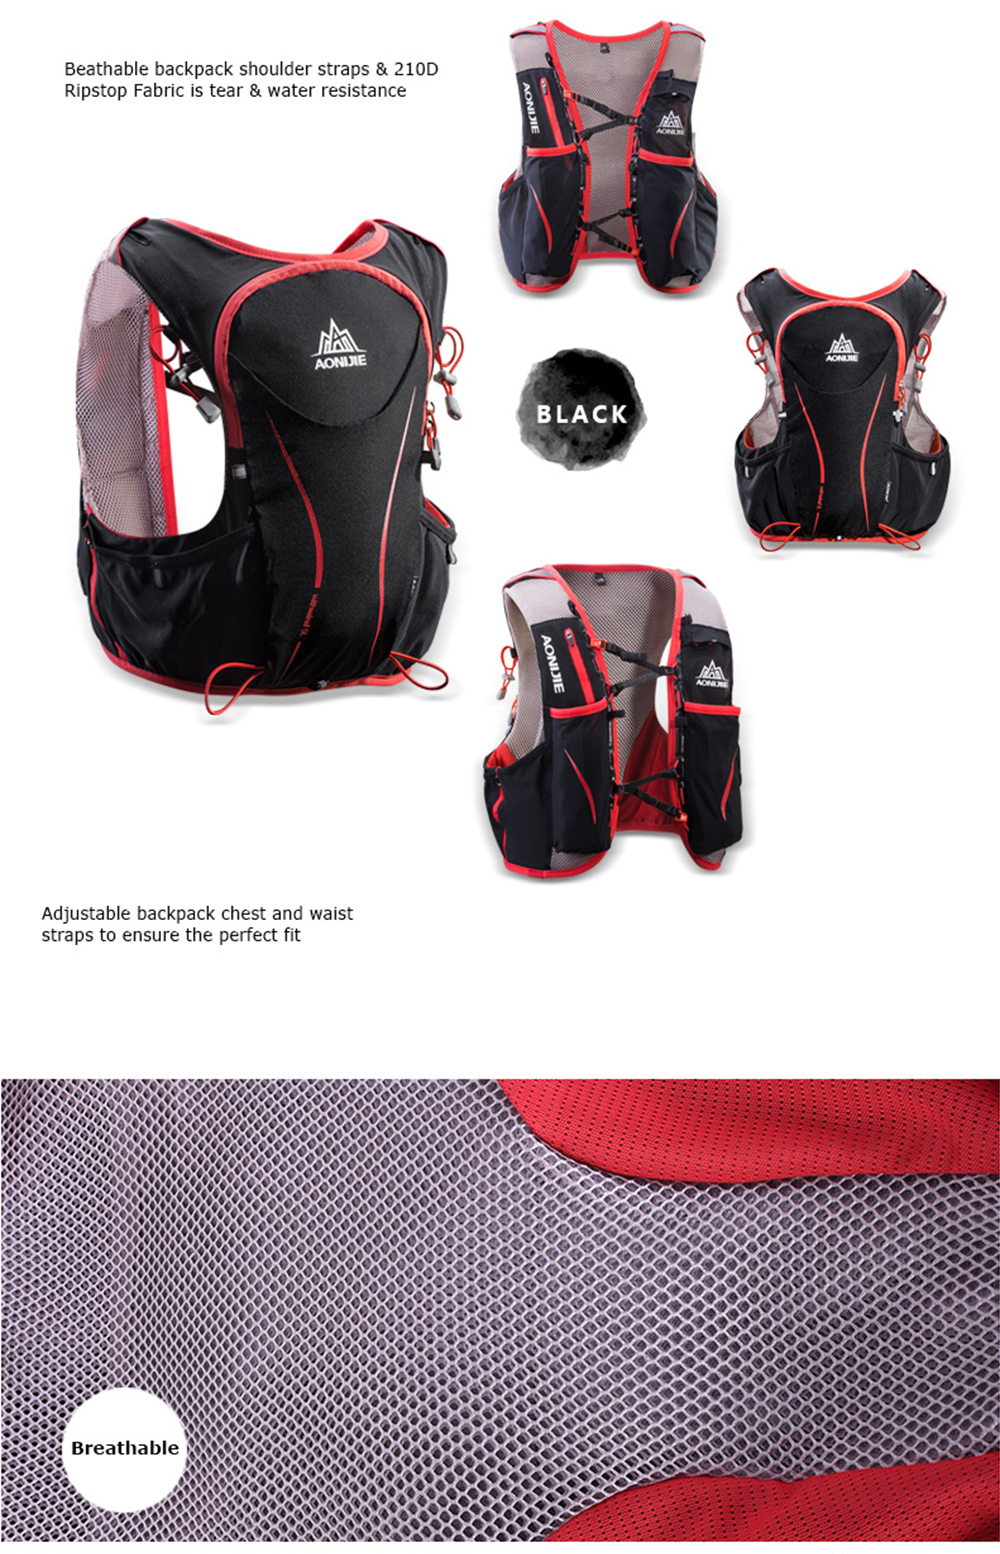 AONIJIE-E906-Hydration-Pack-Backpack-Rucksack-Bag_04